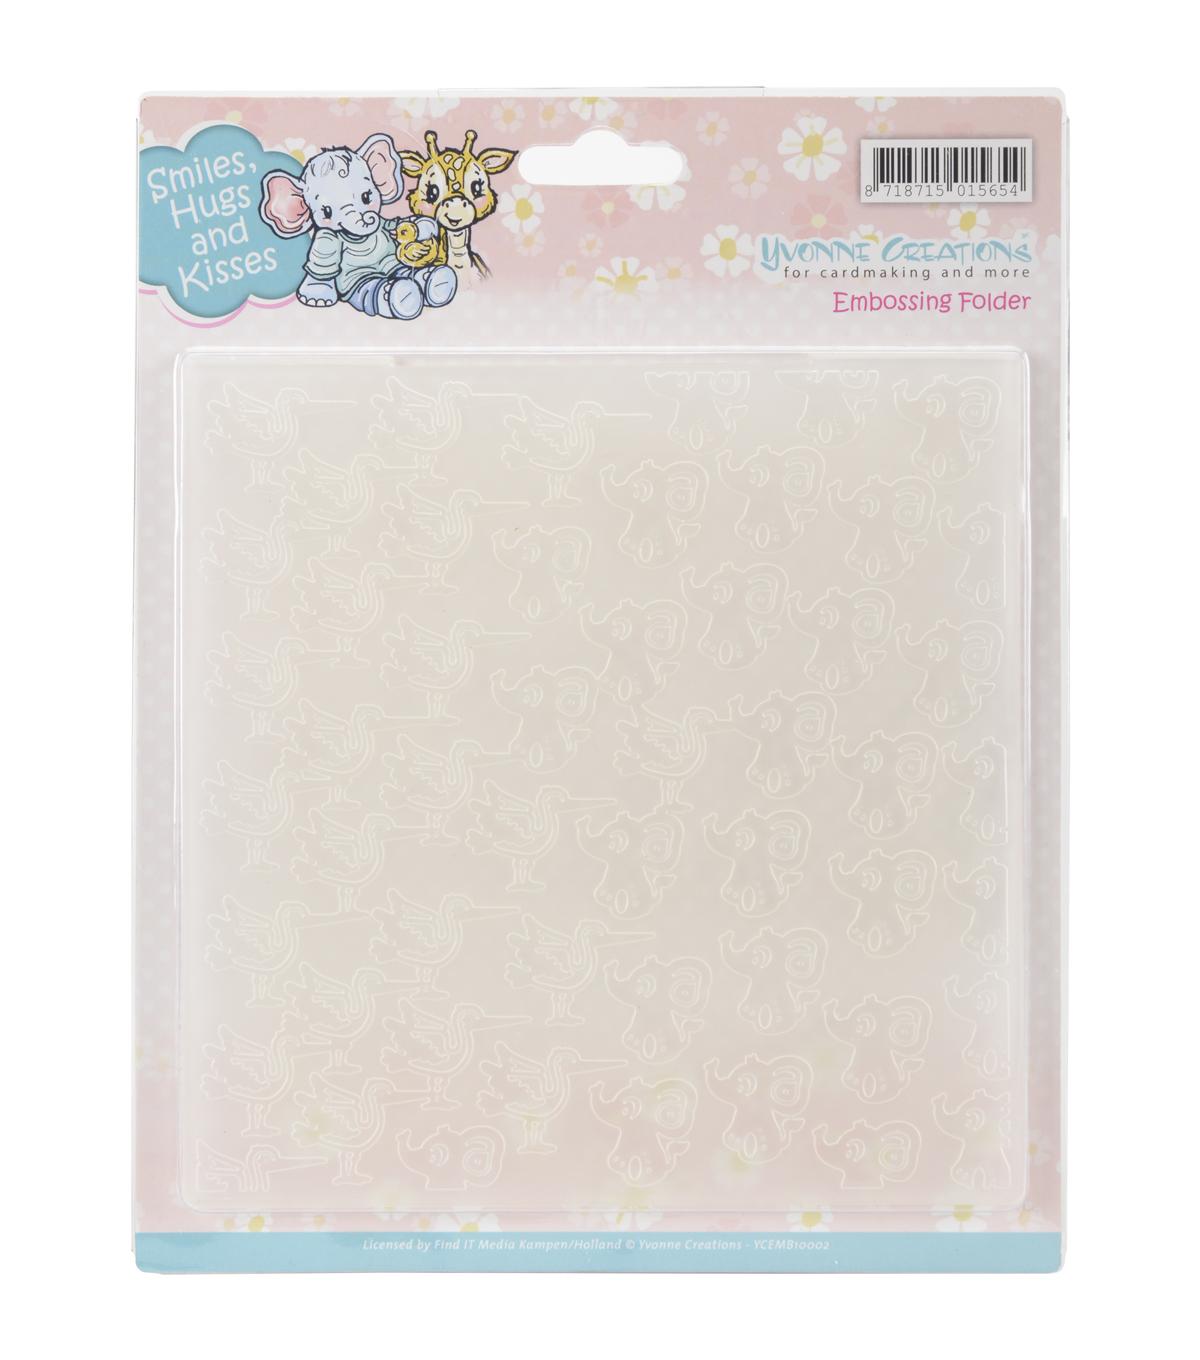 Yvonne Creations Embossing Folder-Smiles, Hugs & Kisses